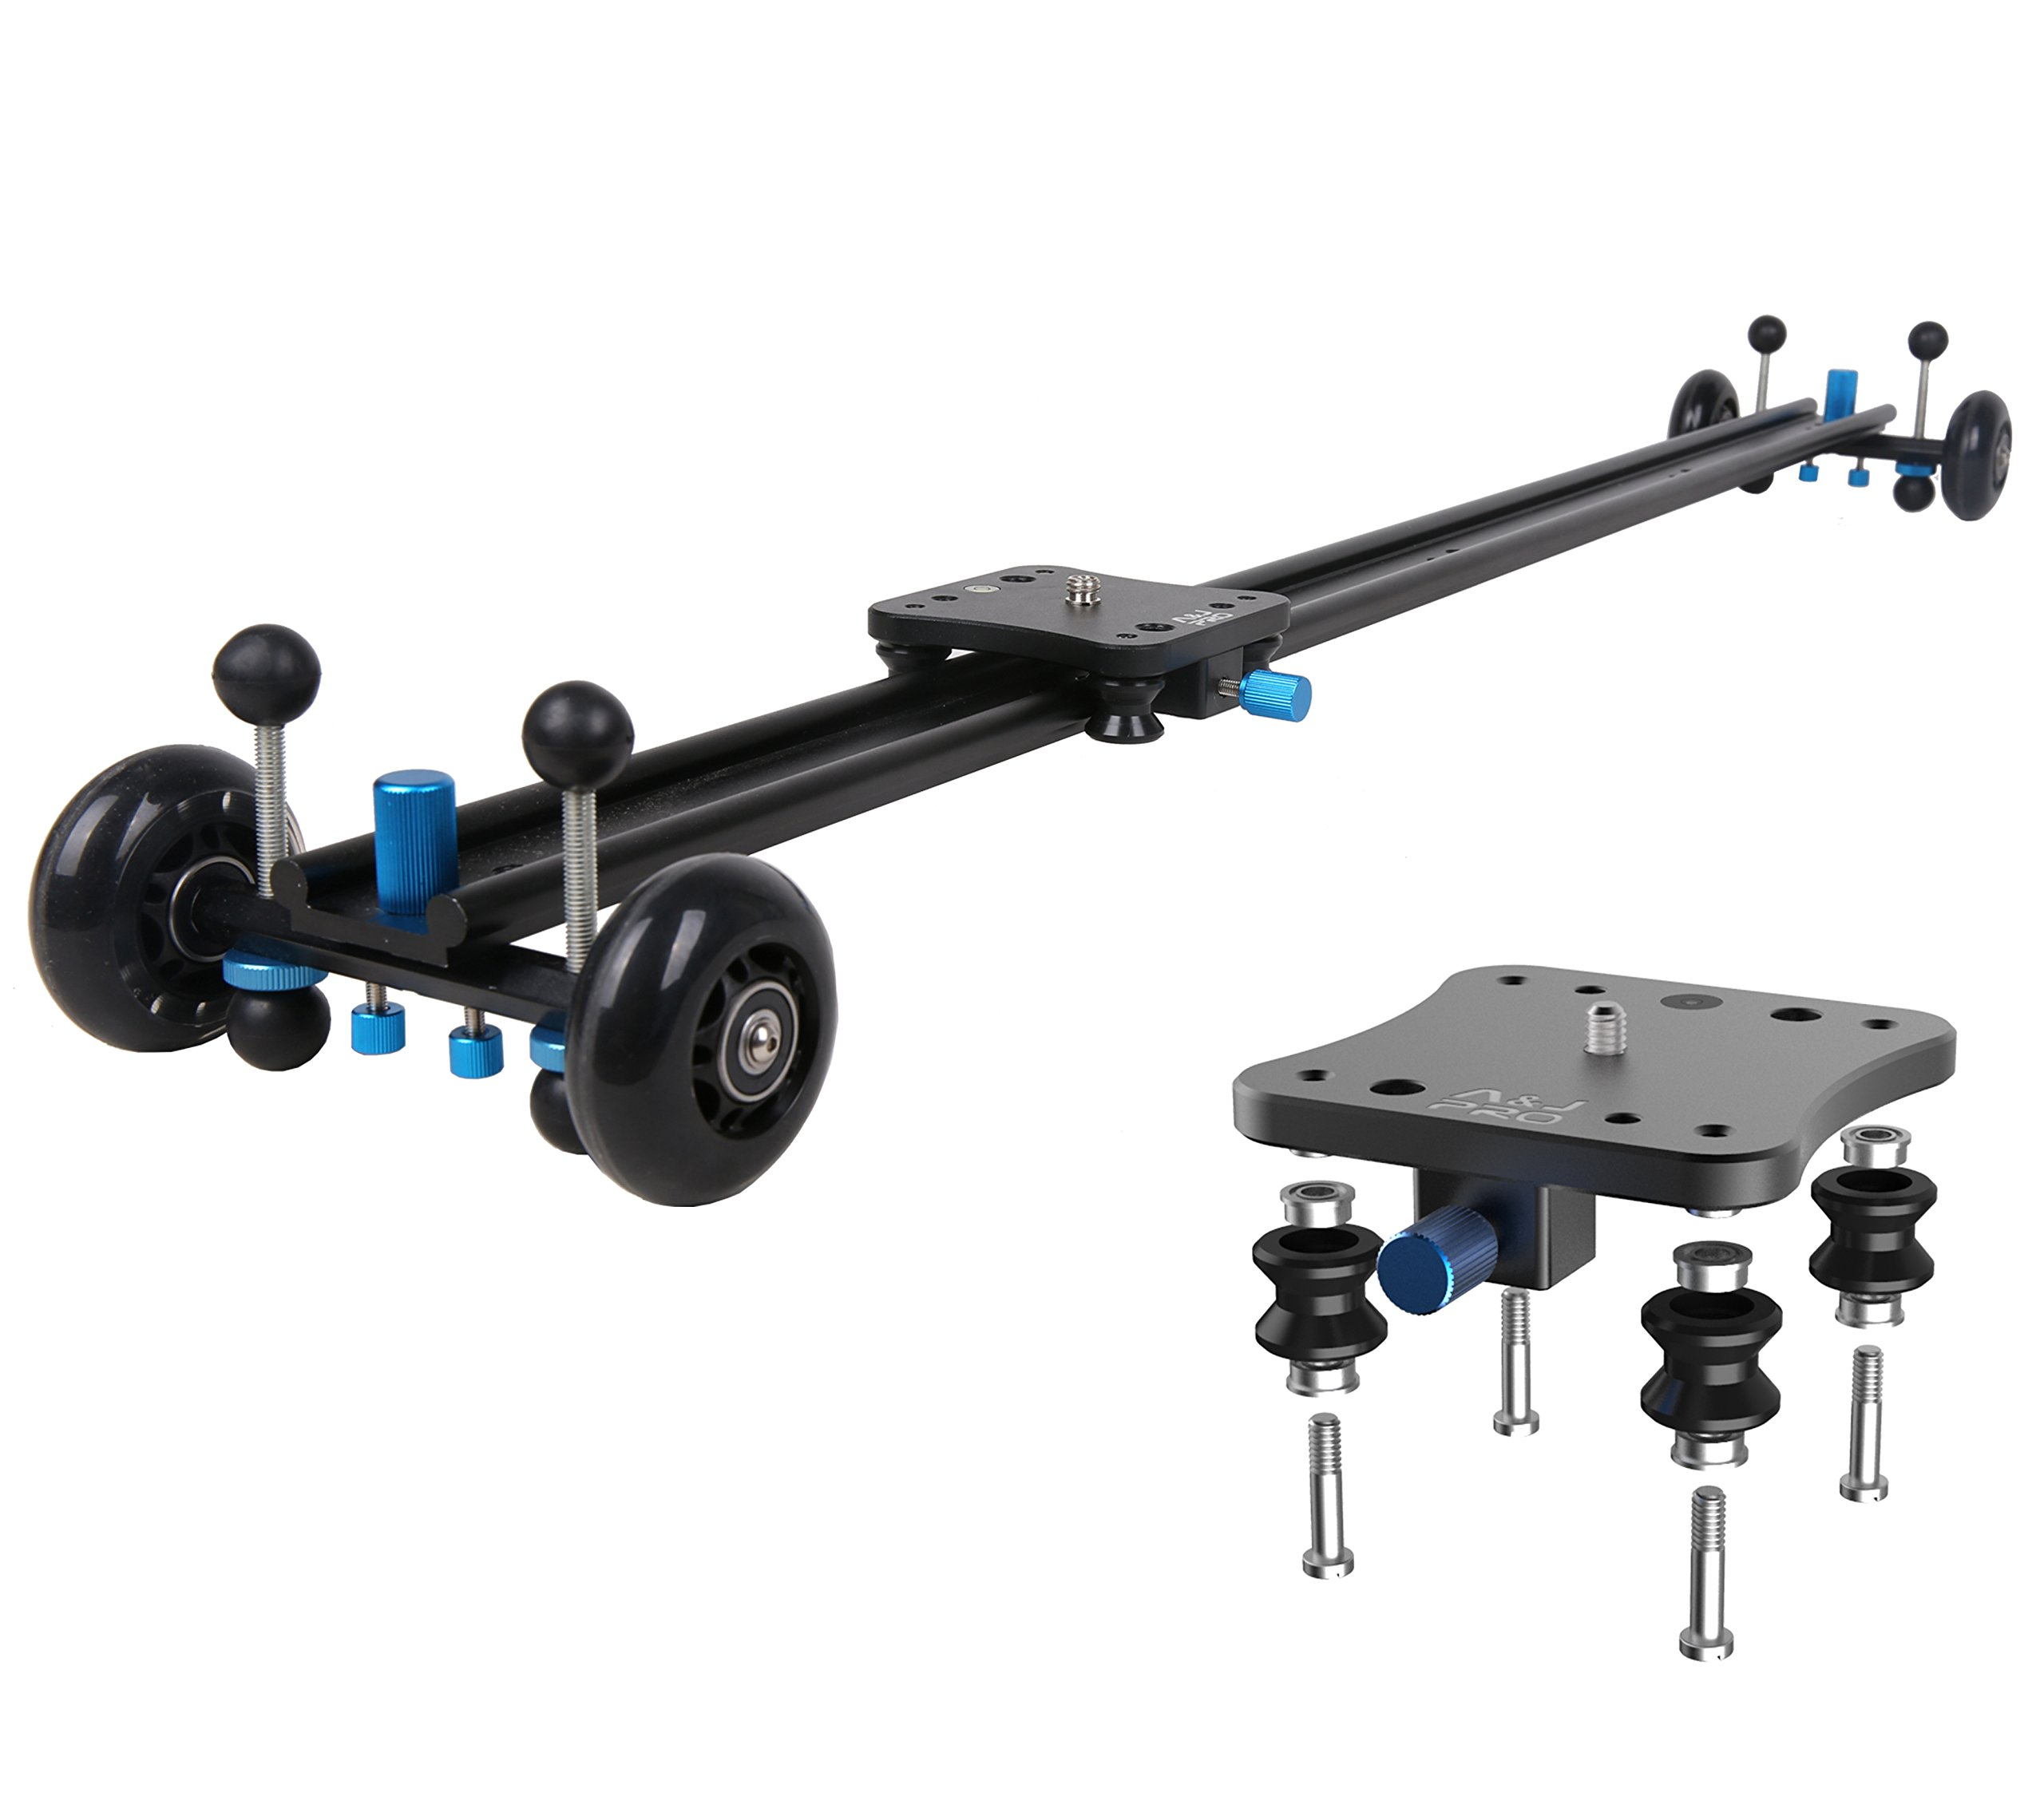 A&J ANJMVSL100 Camera Slider with Aluminum Rail & 4 Wheels Video Dolly Track Photography Stabilizer for DSLR Camera, Black by A&J